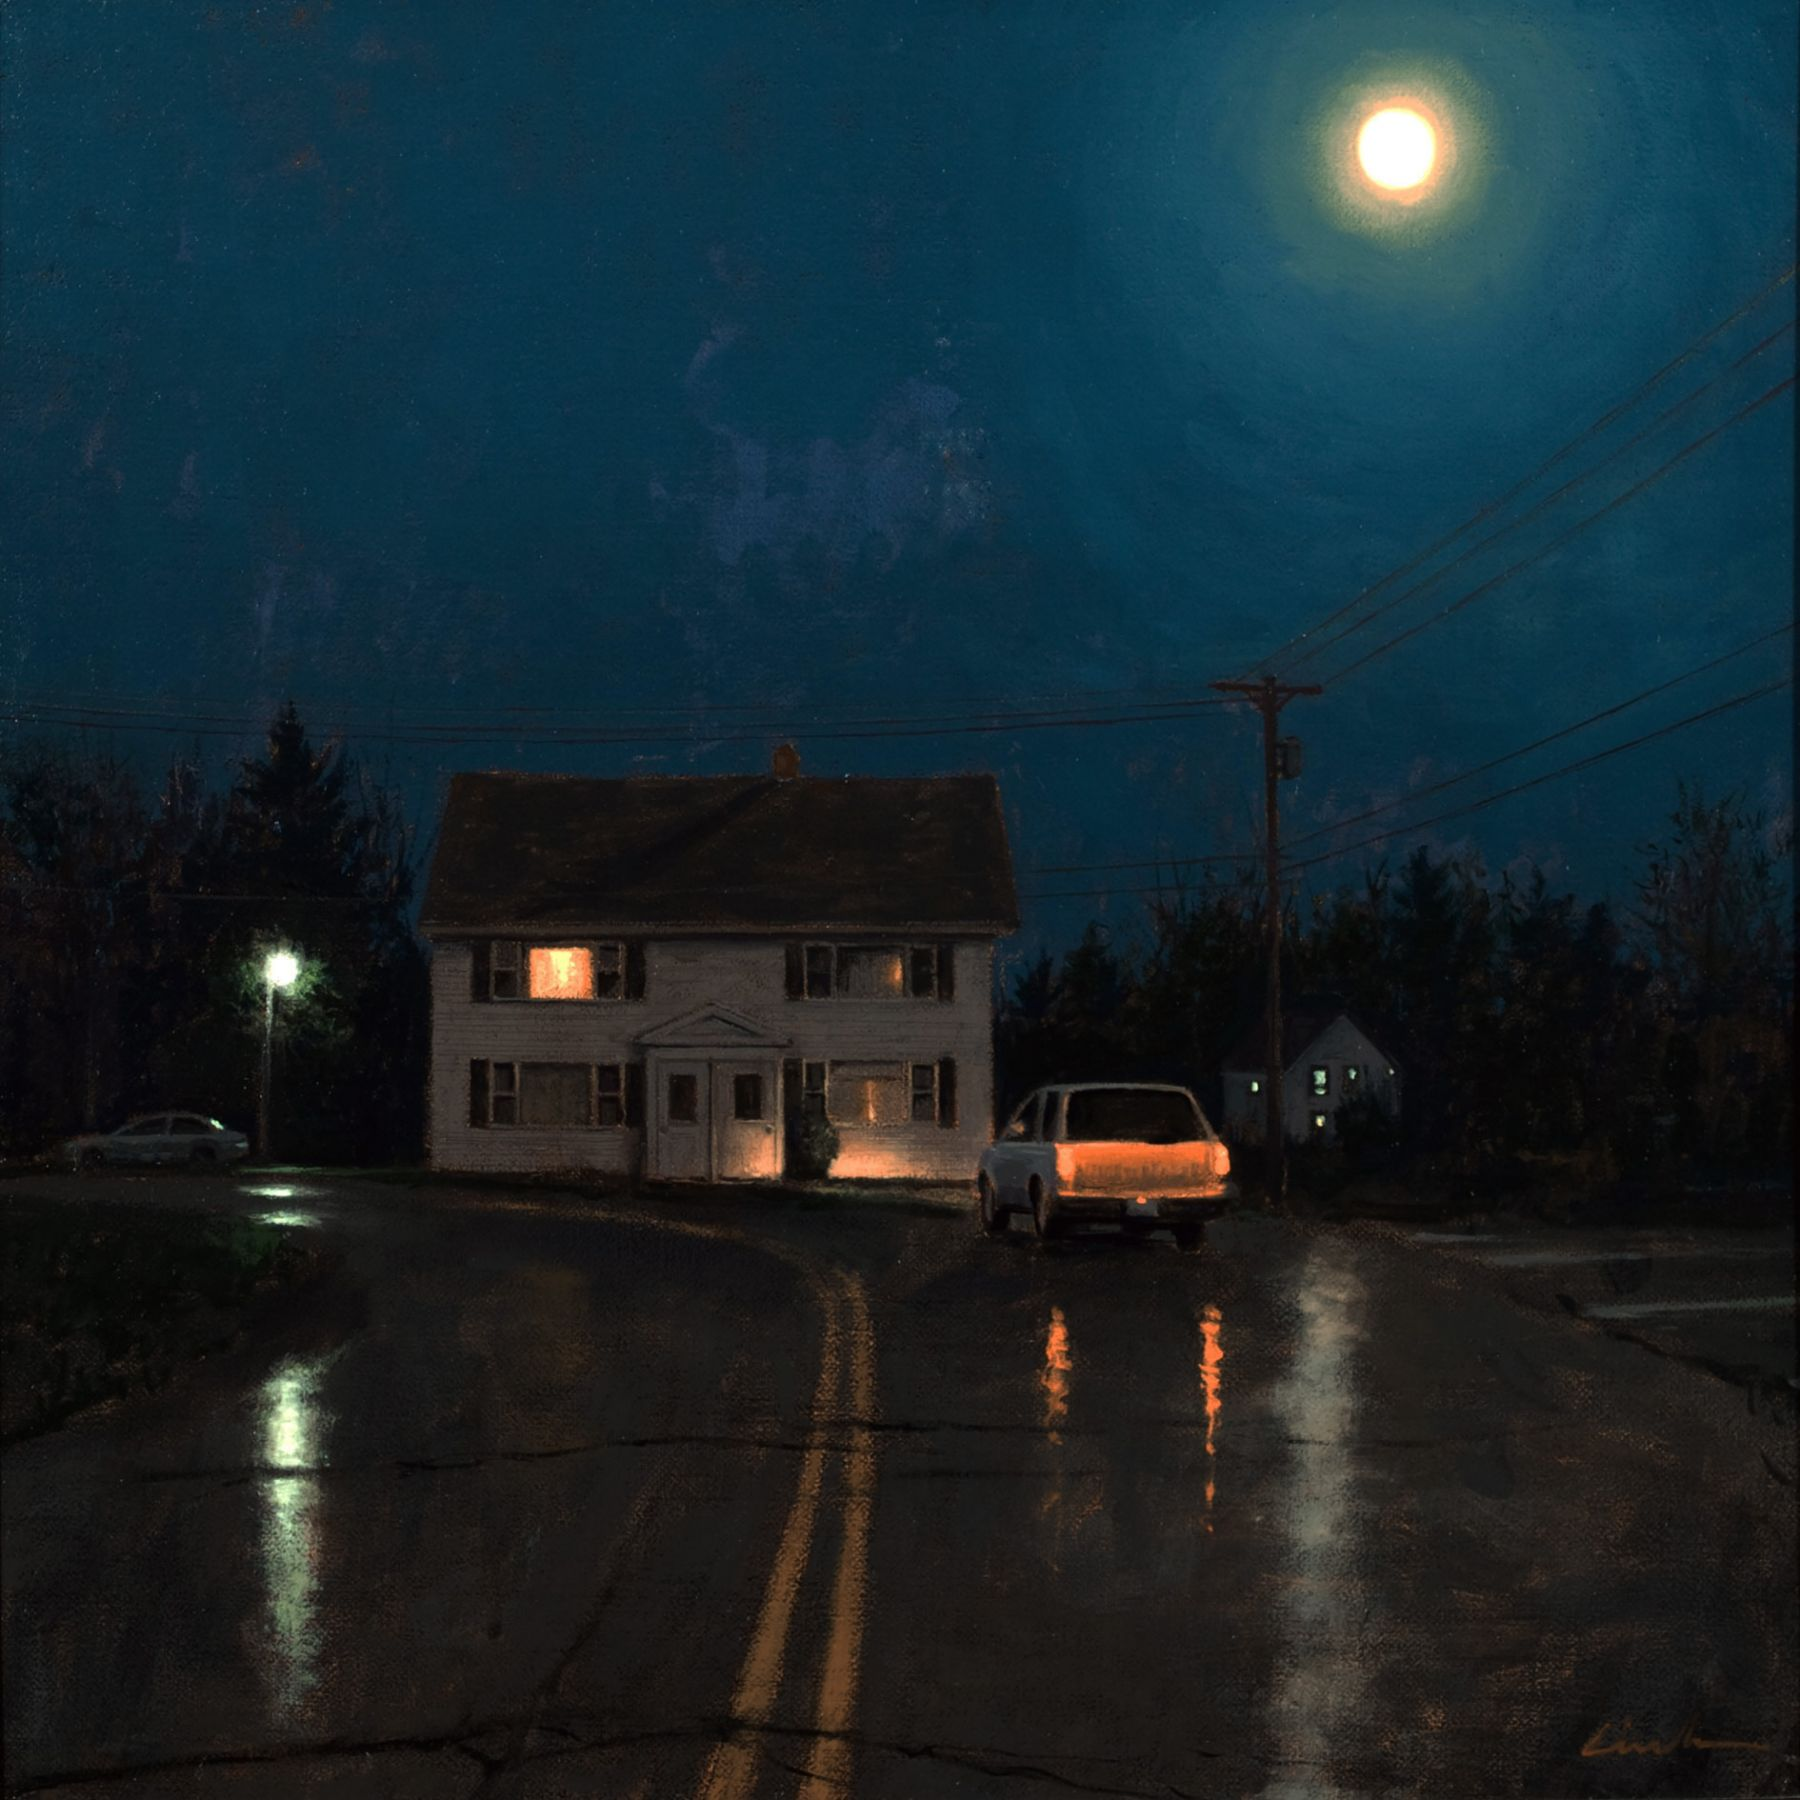 Linden Frederick, Duplex (SOLD), 2007, oil on panel, 12 1/4 x 12 1/4 inches